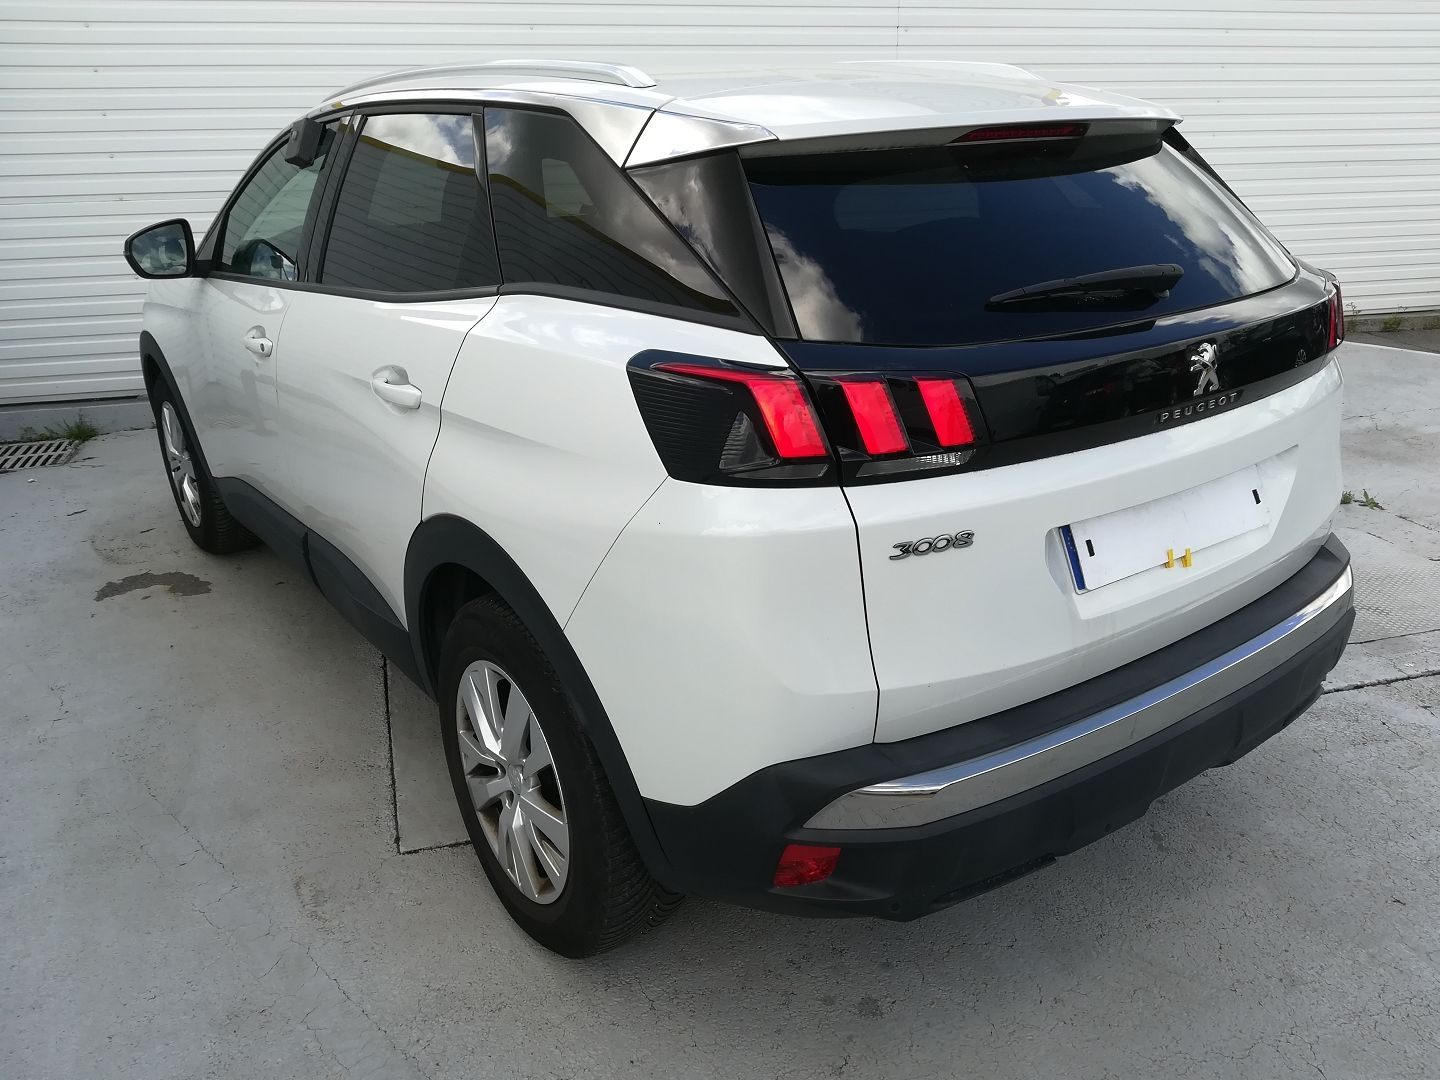 PEUGEOT 3008 1.6 BLUEHDI 120CH ACTIVE BUSINESS S&S BASSE CONSOMMATION